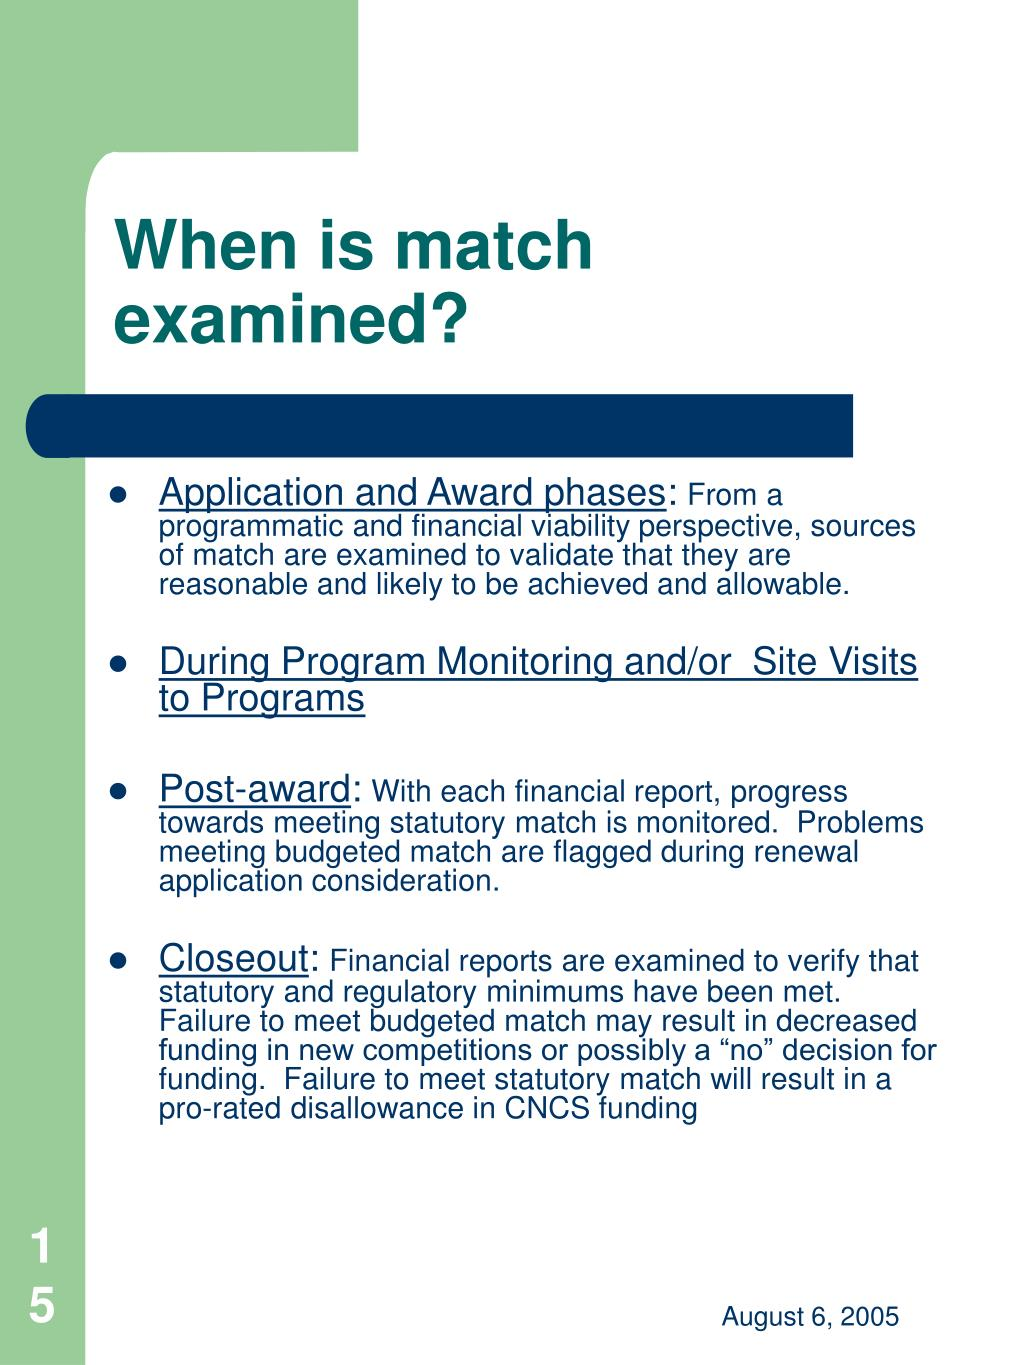 When is match examined?